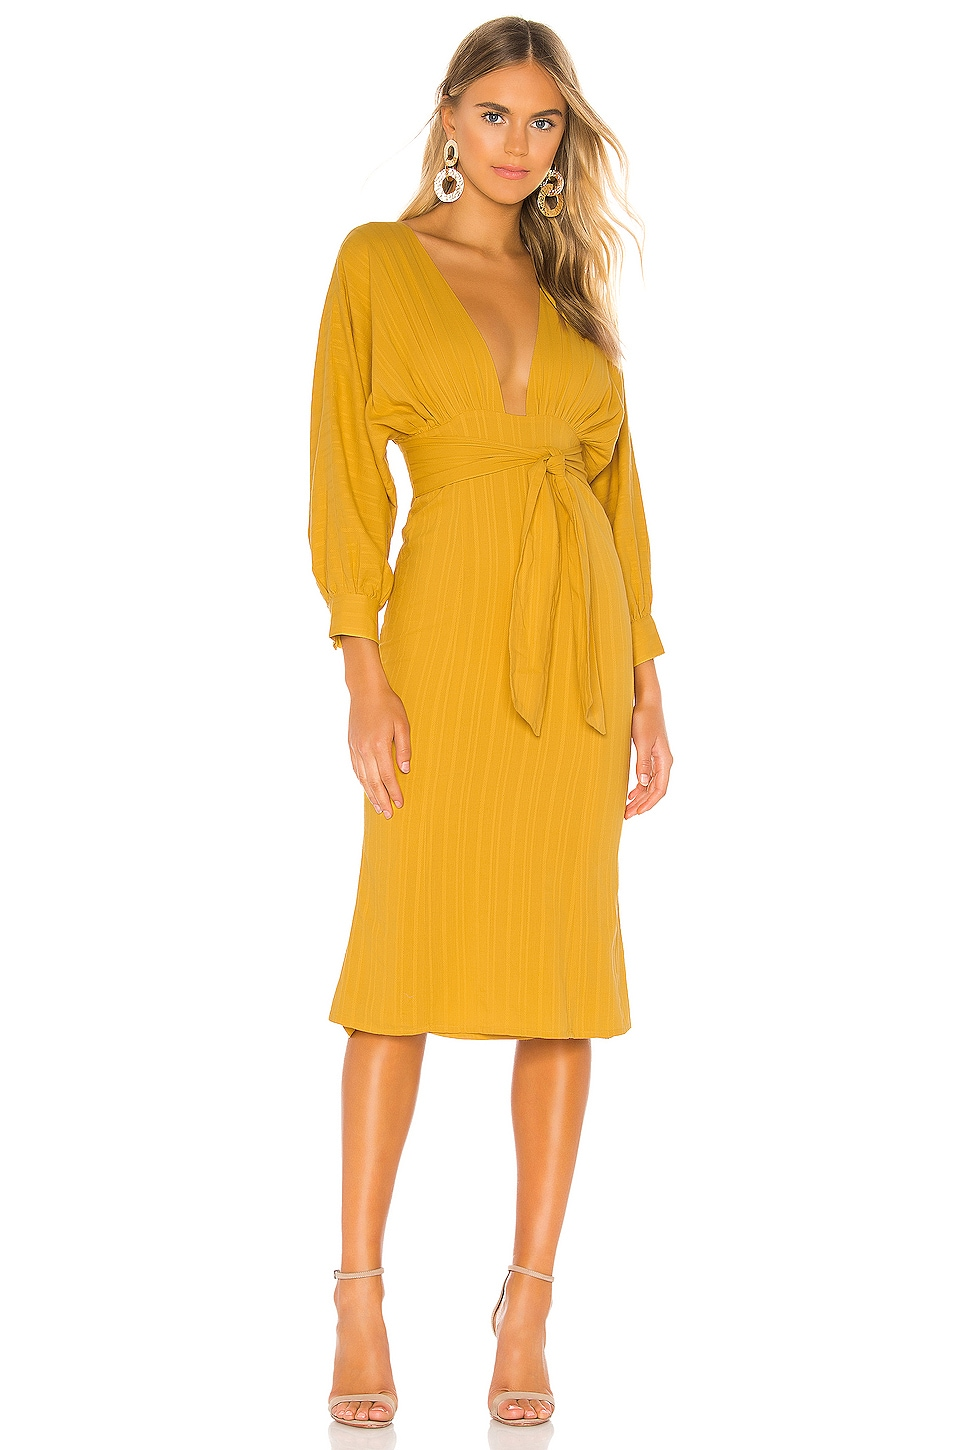 Tularosa Khyla Midi Dress in Mustard Yellow